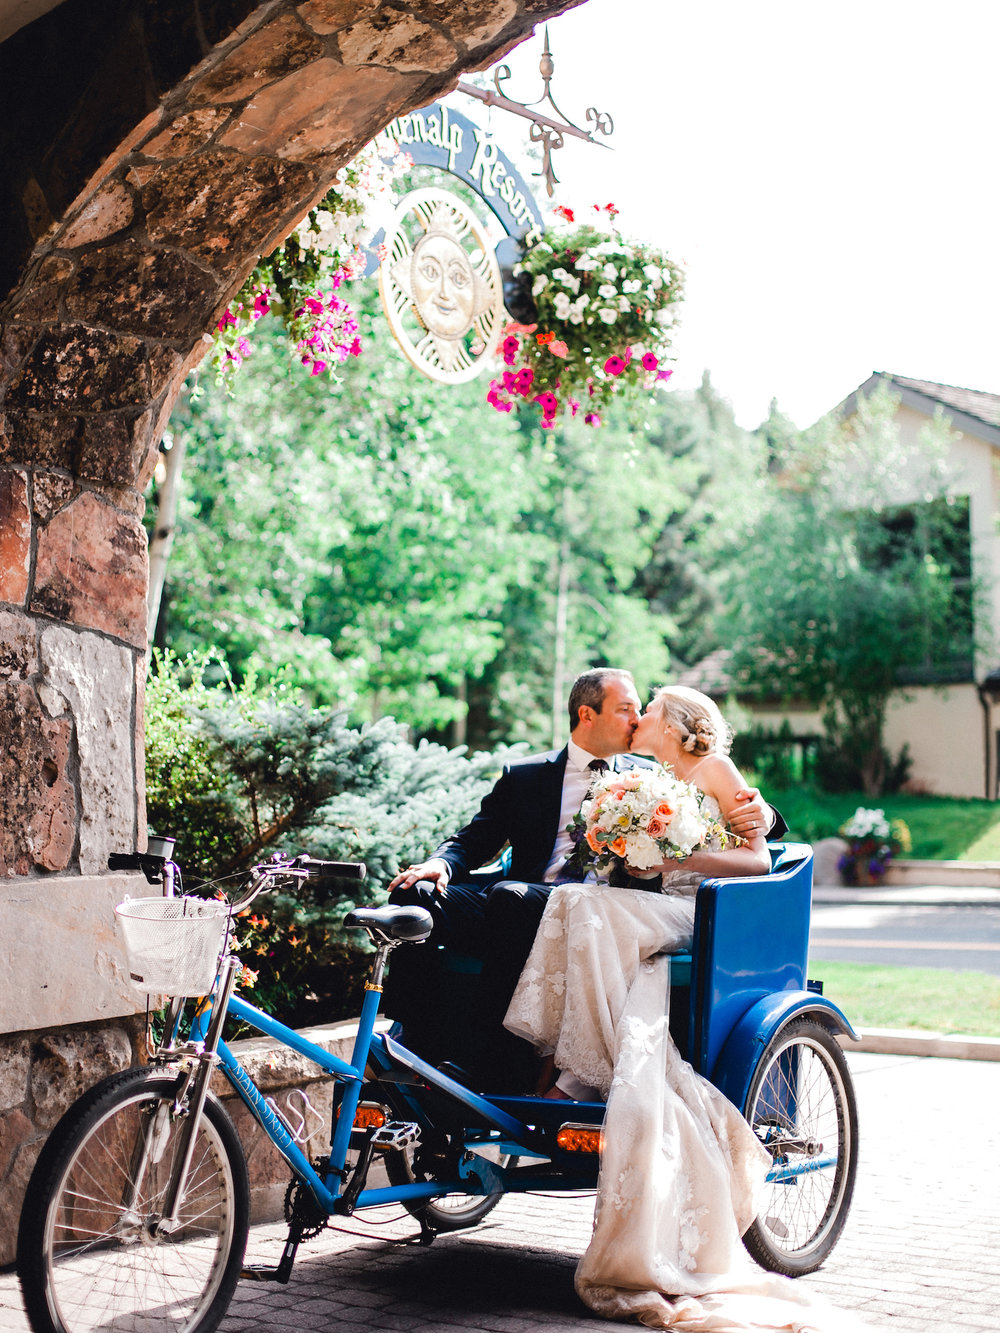 Bride and Groom arriving for their wedding reception at the Sonnenalp in a pedicab